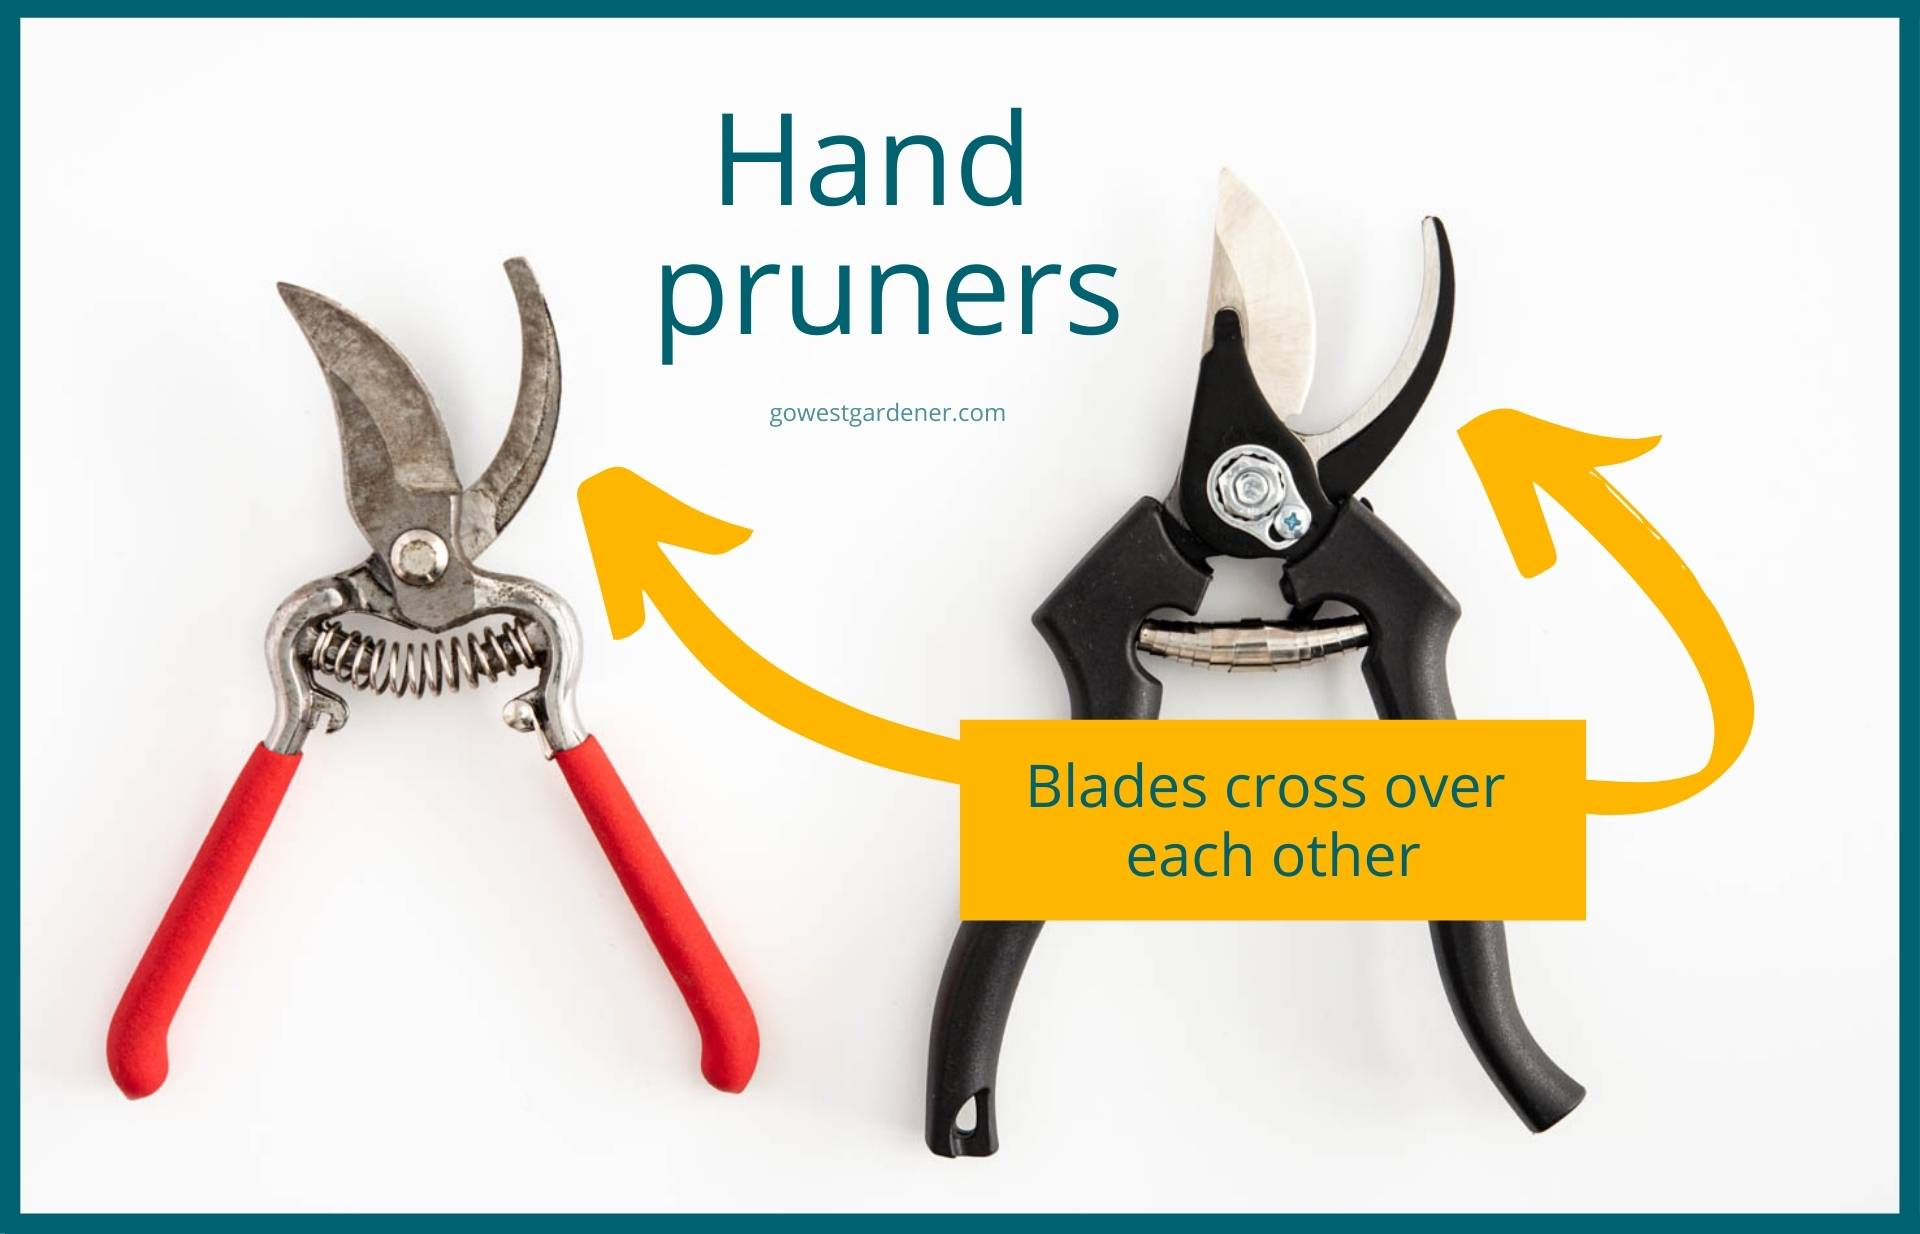 This is what hand pruners look like -- the blades cross over each other, rather than meeting in the middle